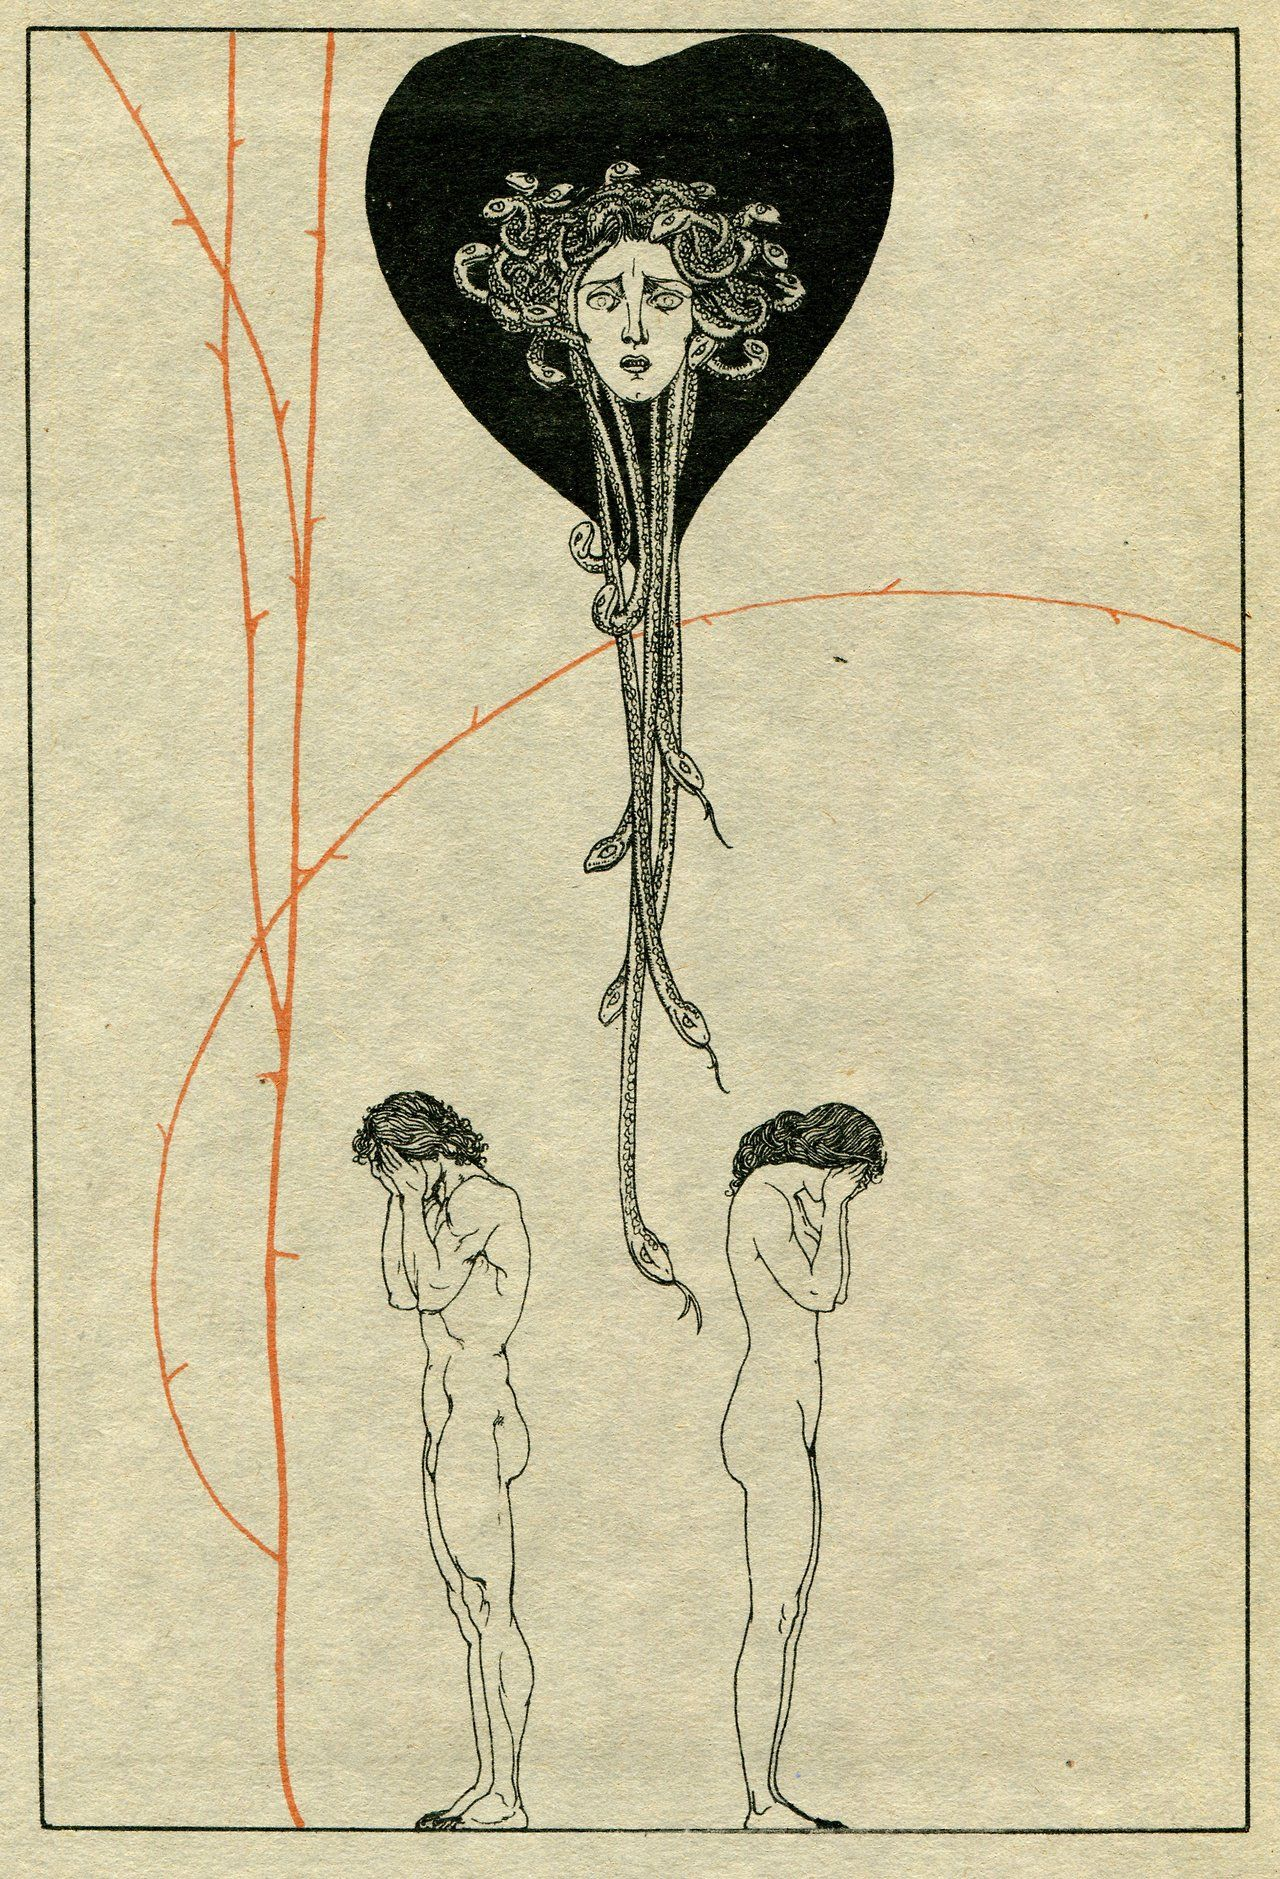 Illustration by Willy Pogany for Tannhauser